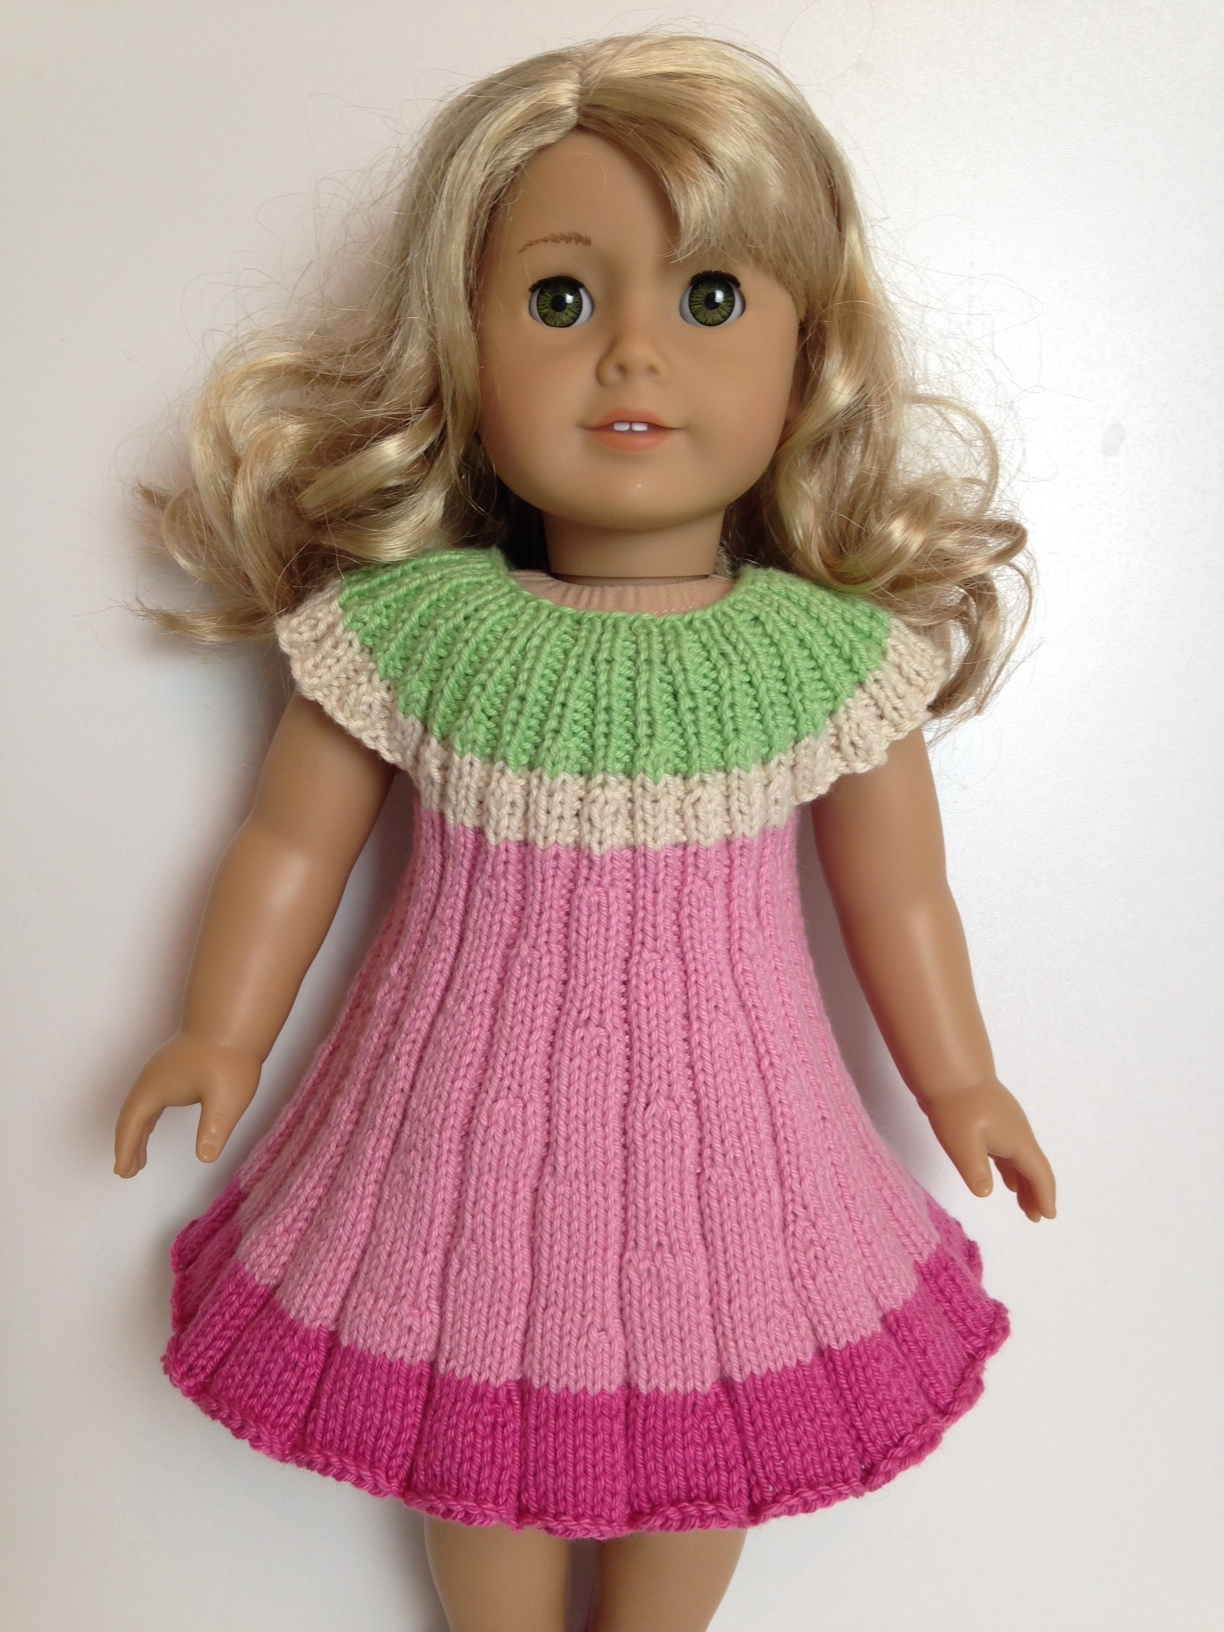 Flower dress knitting pattern fits 18 doll knit n play flower dress knitting pattern fits 18 doll bankloansurffo Images